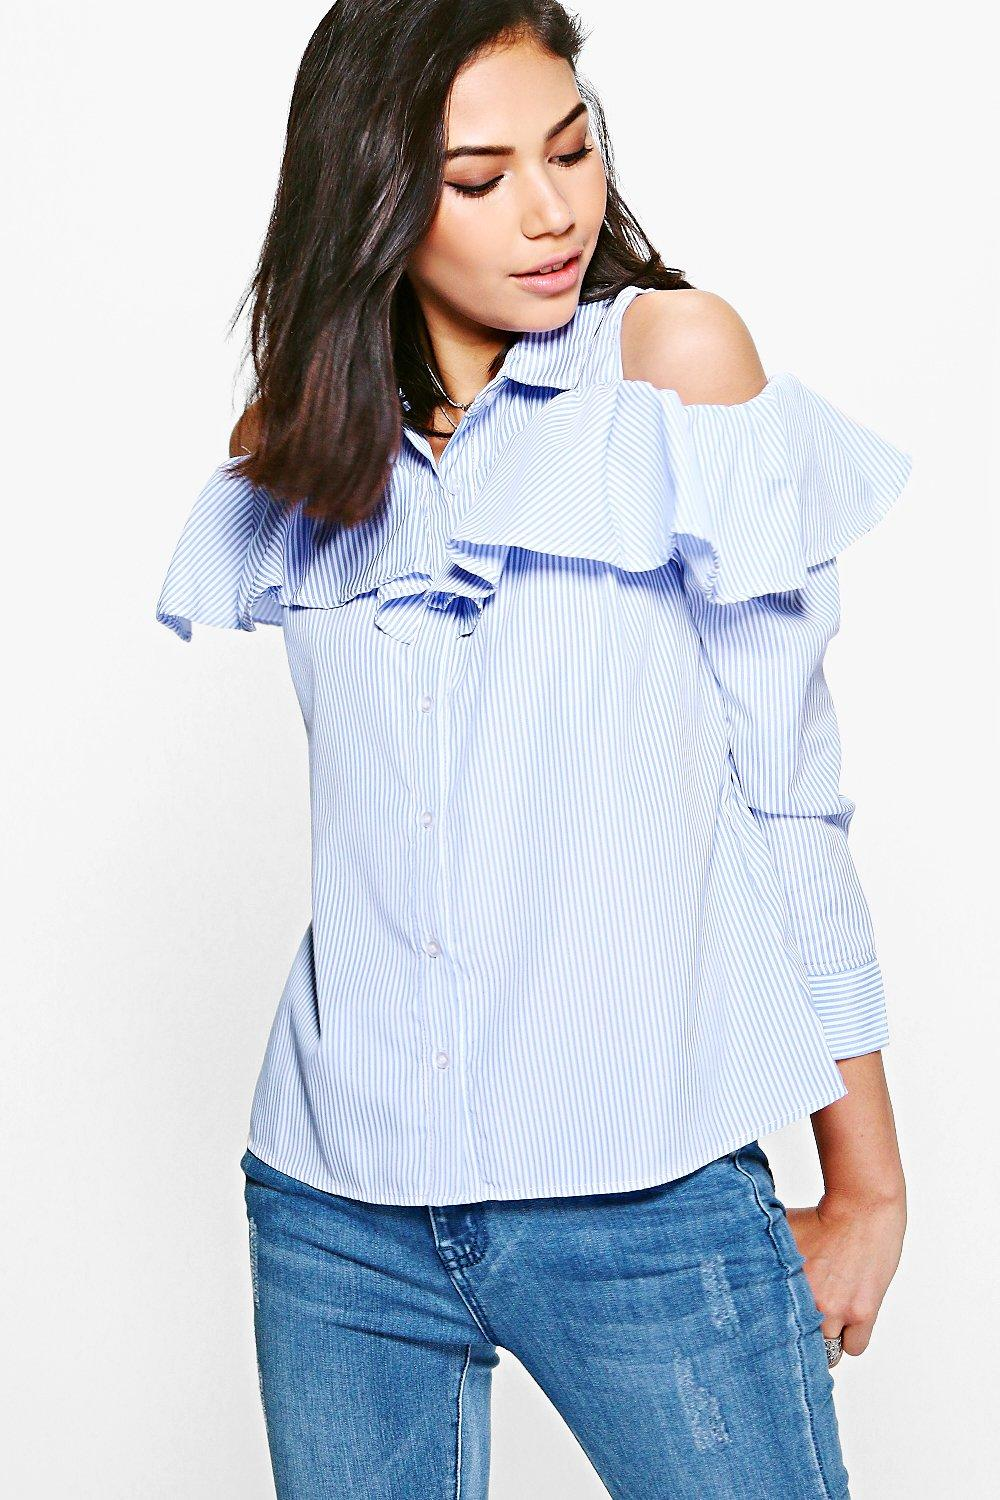 18bcc4fec30739 Georgia Ruffle Striped Cold Shoulder Long Sleeve Shirt. Hover to zoom